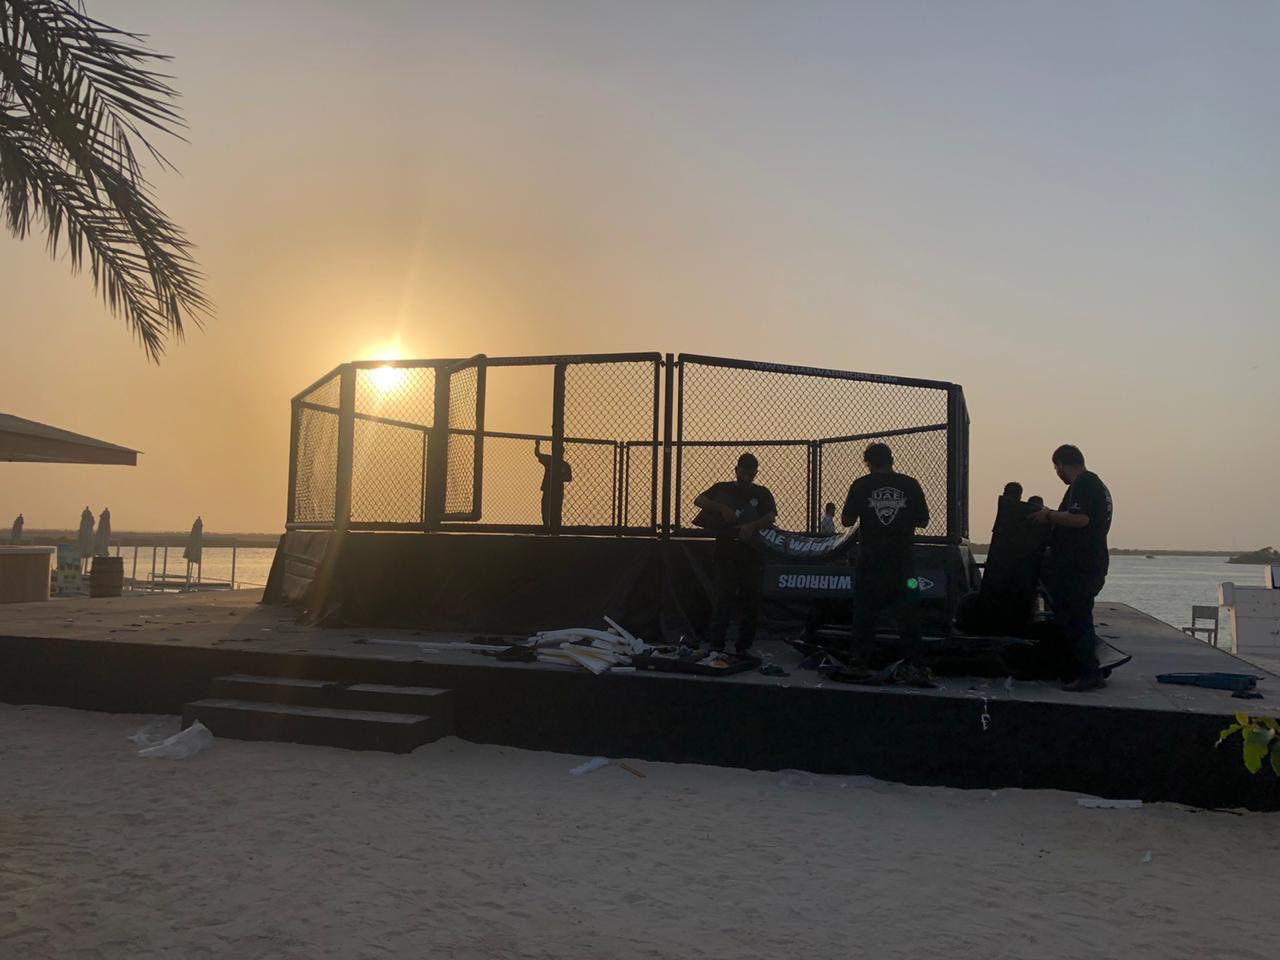 Dana White reveals image of Fight Island Octagon...and there's a beach involved! - Dana White